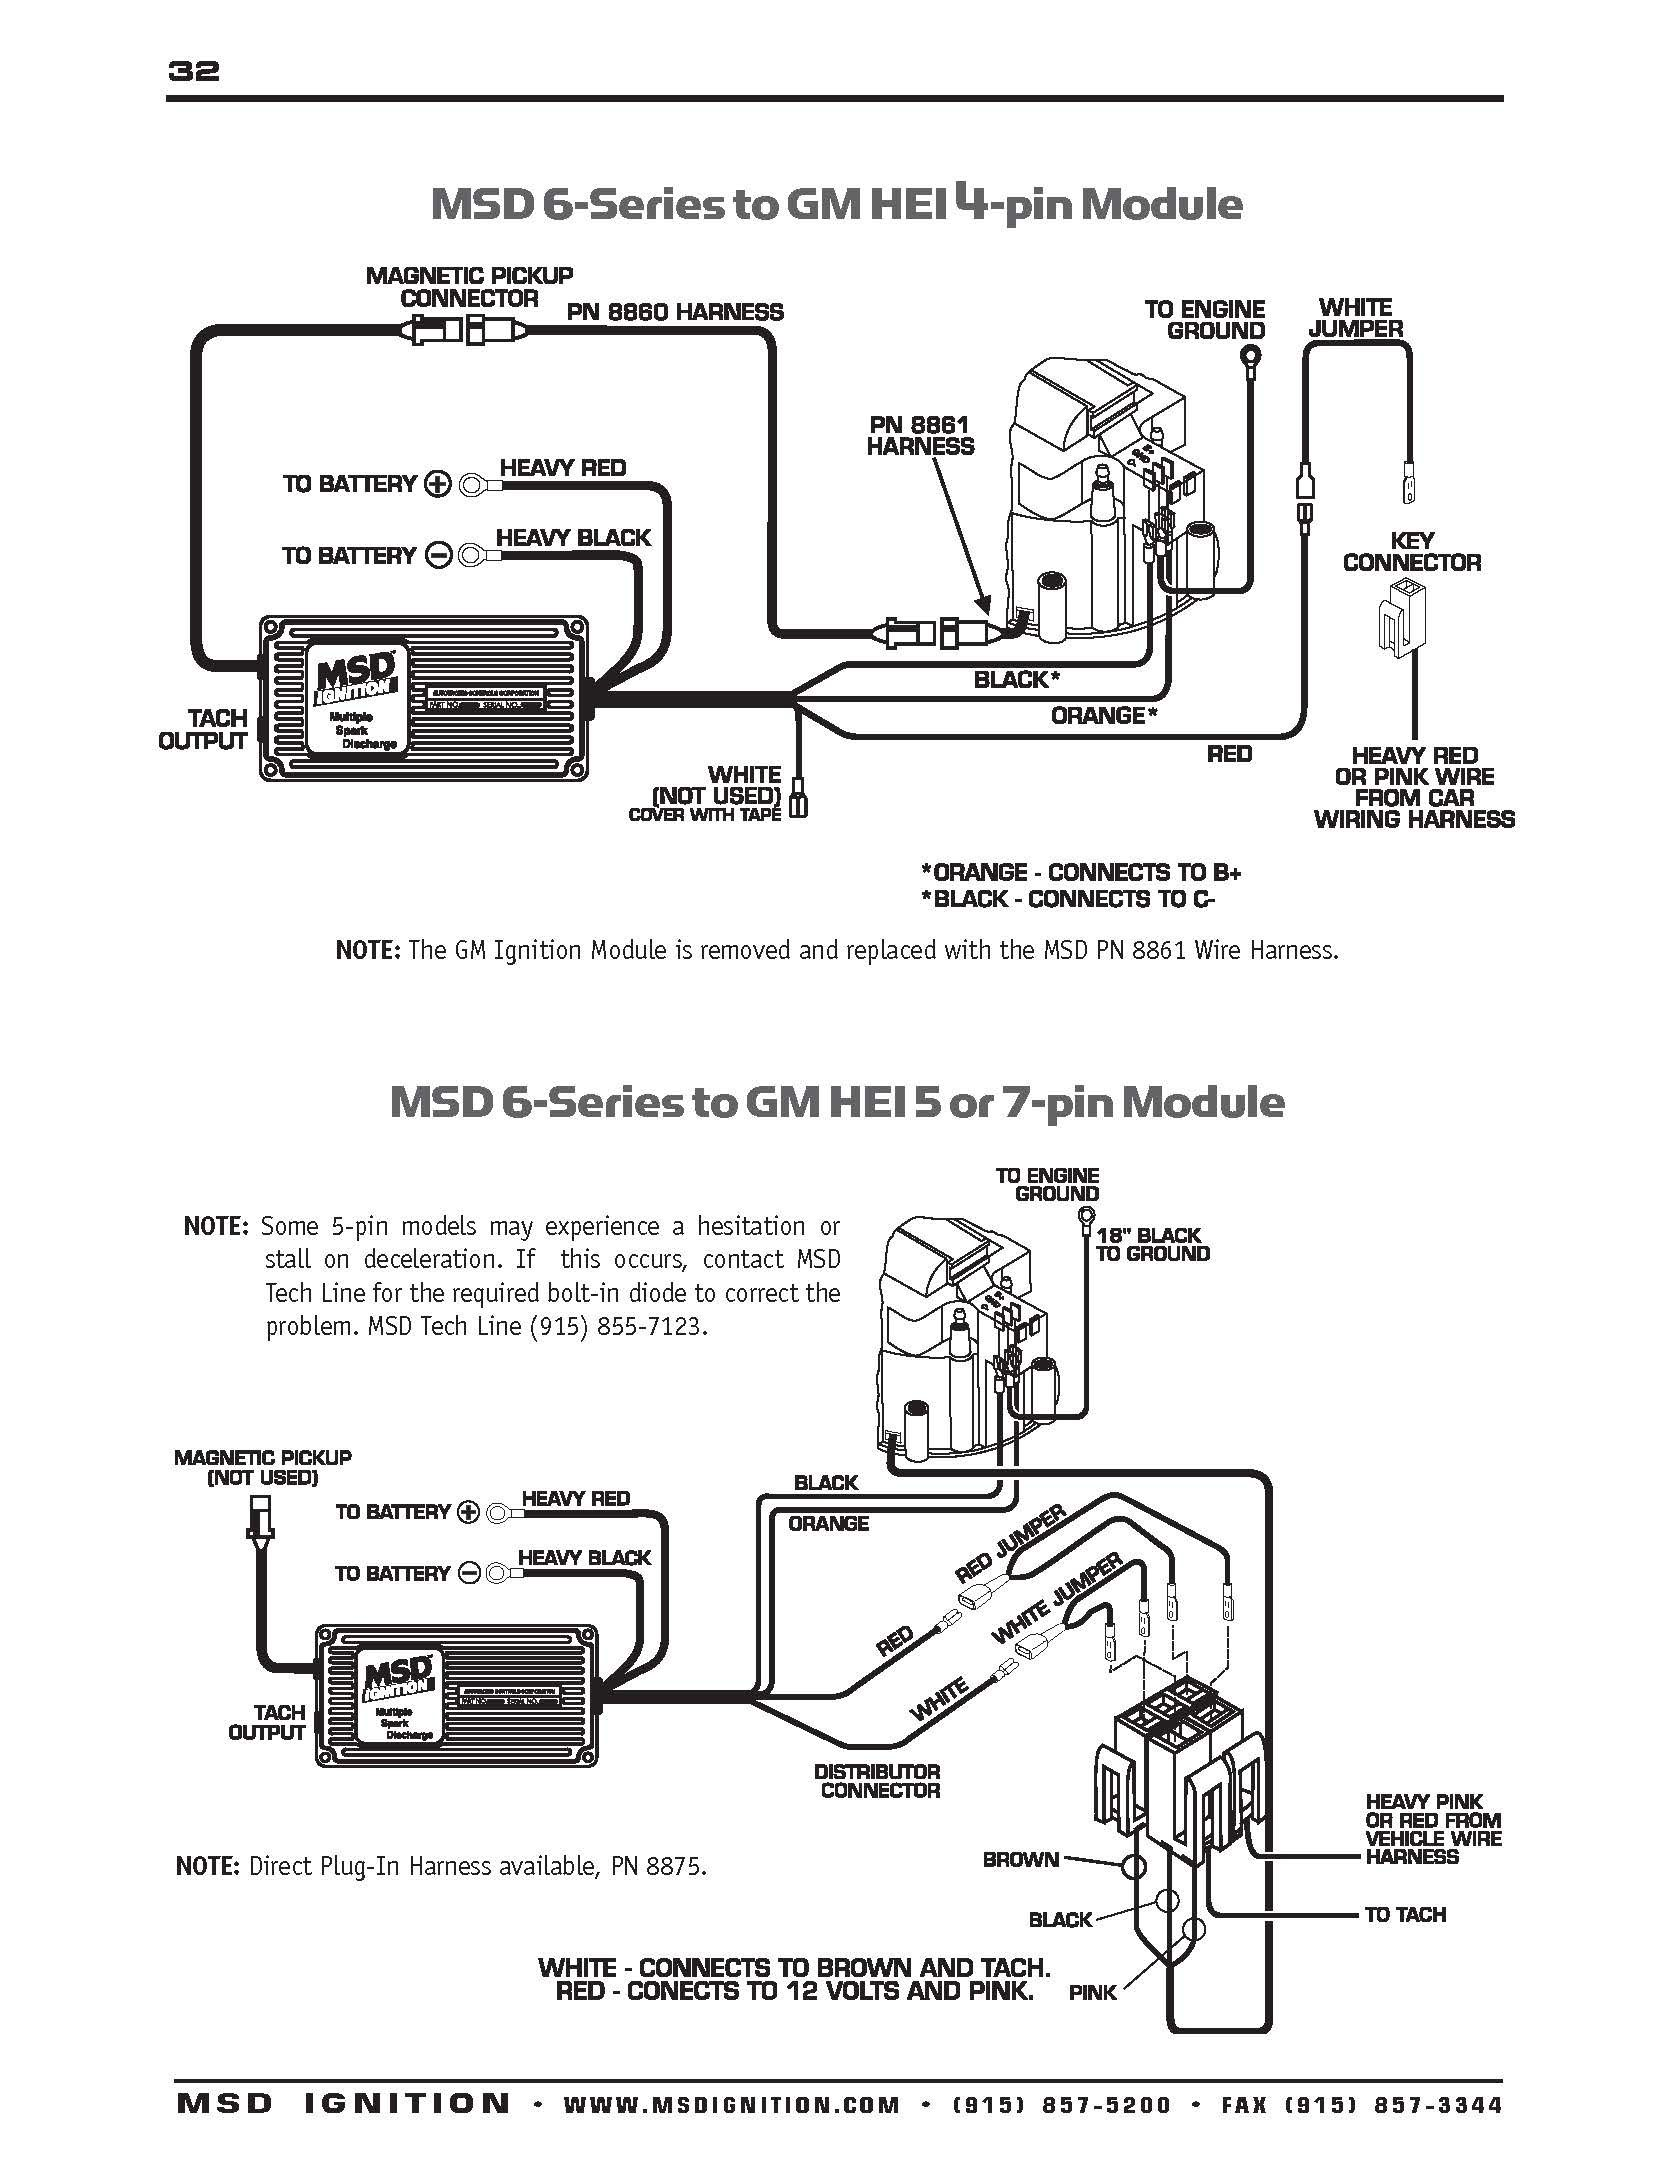 DIAGRAM] Mopar Msd Ignition Wiring Diagram FULL Version HD Quality Wiring  Diagram - FEPHASEDIAGRAM.HUNGKUEN.IT  hungkuen.it